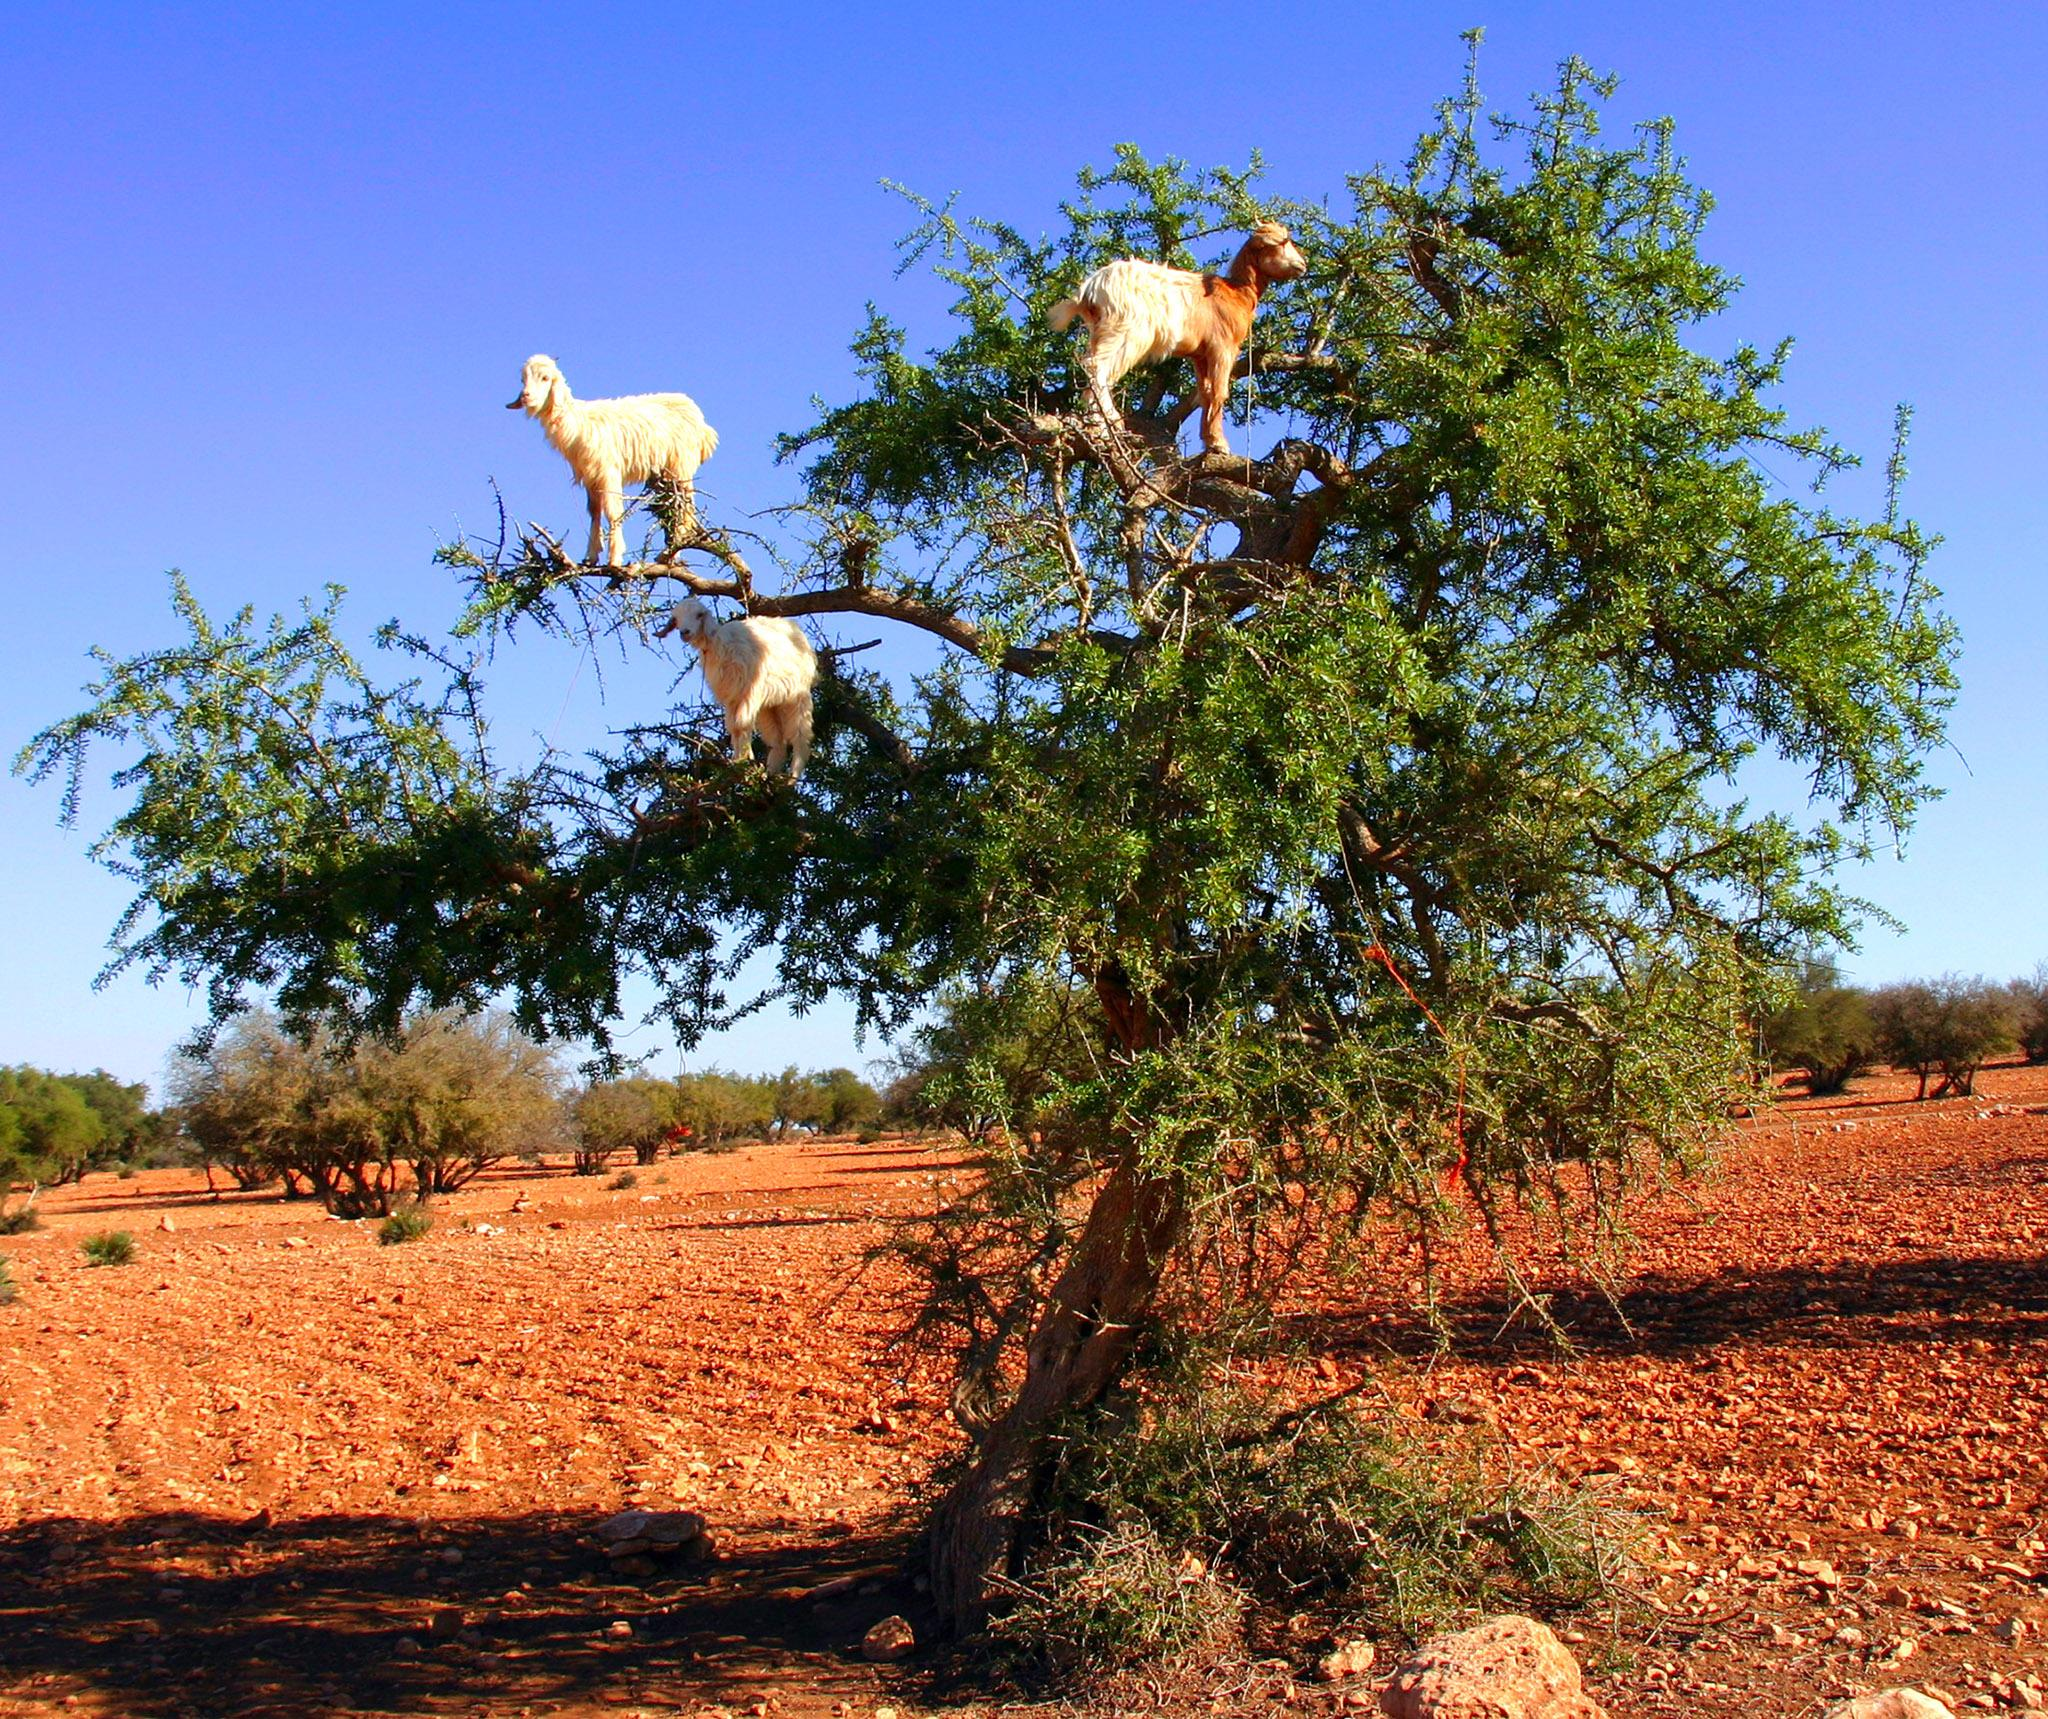 Tree-climbing goats forced up branches in scam to attract tourists, says expert